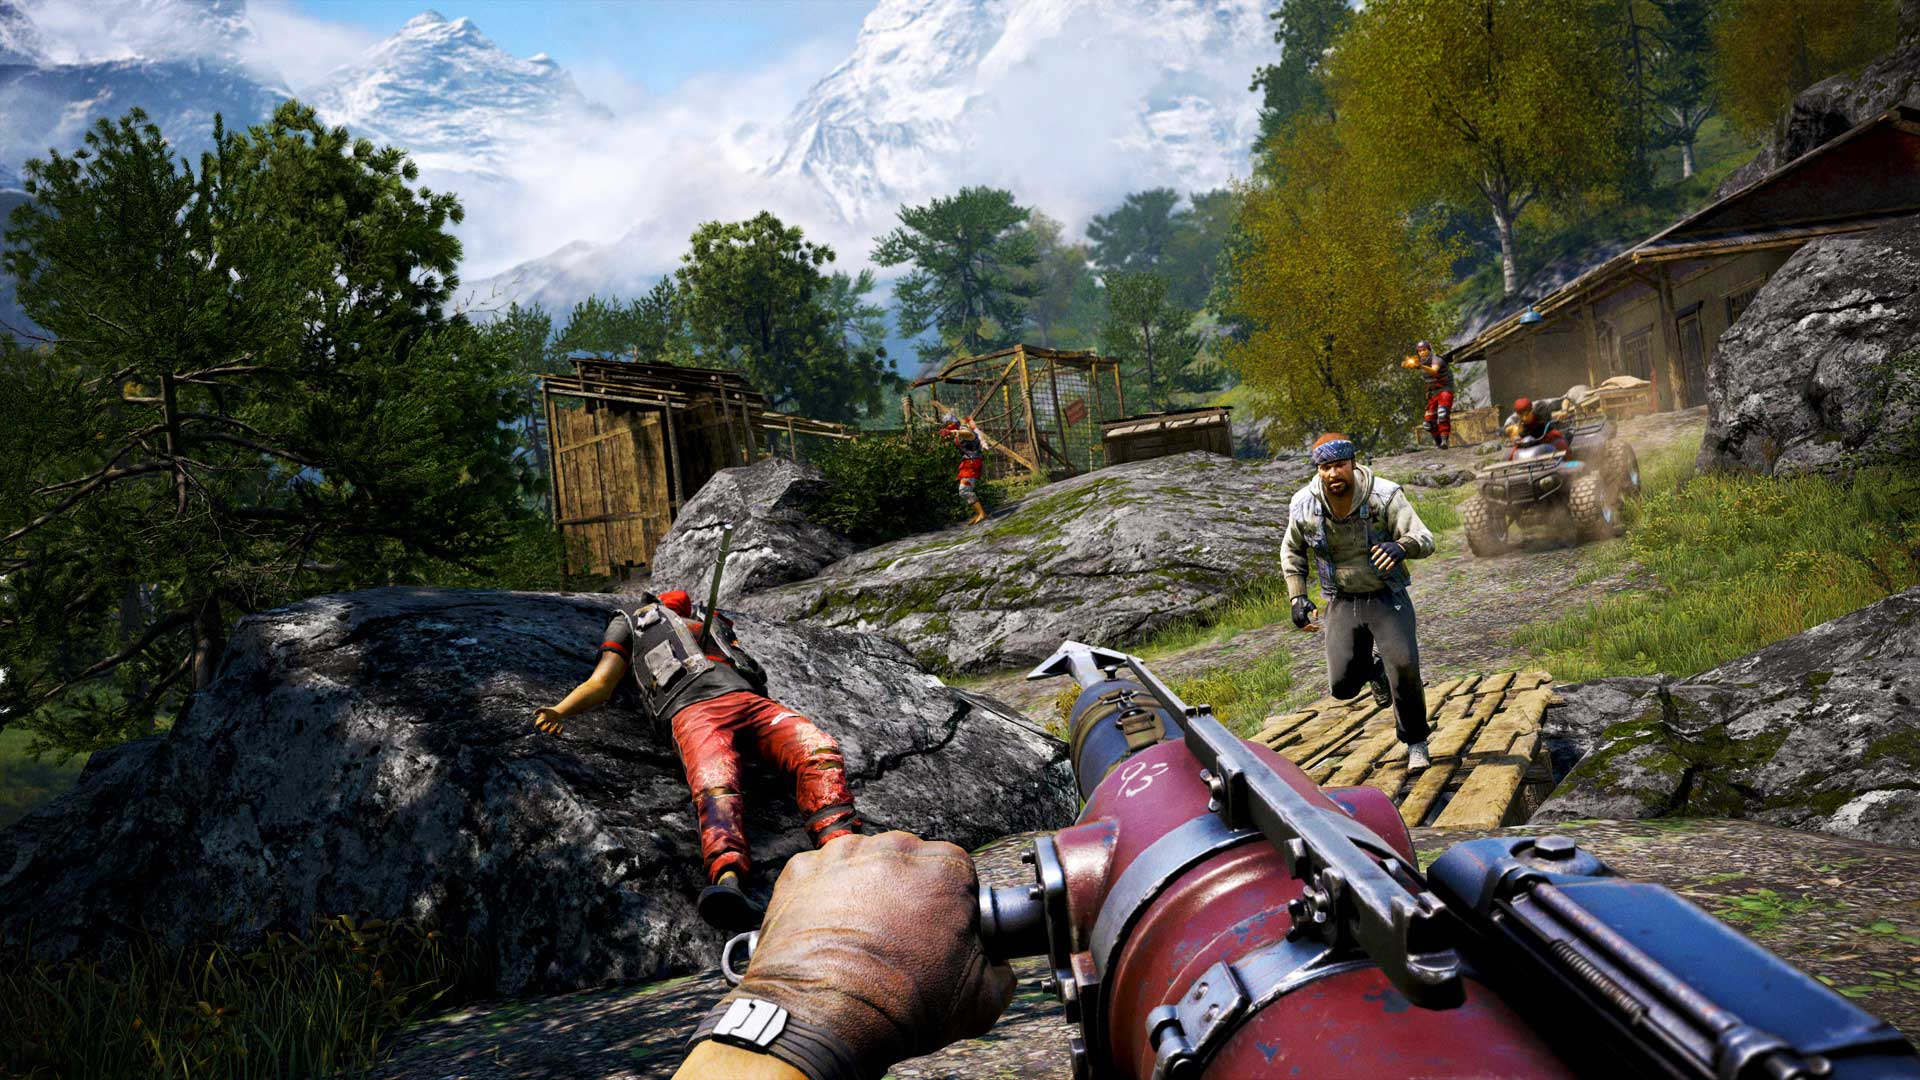 Second Far Cry 4 Dlc Pack Adds New Missions And Weapons Pc Gamer